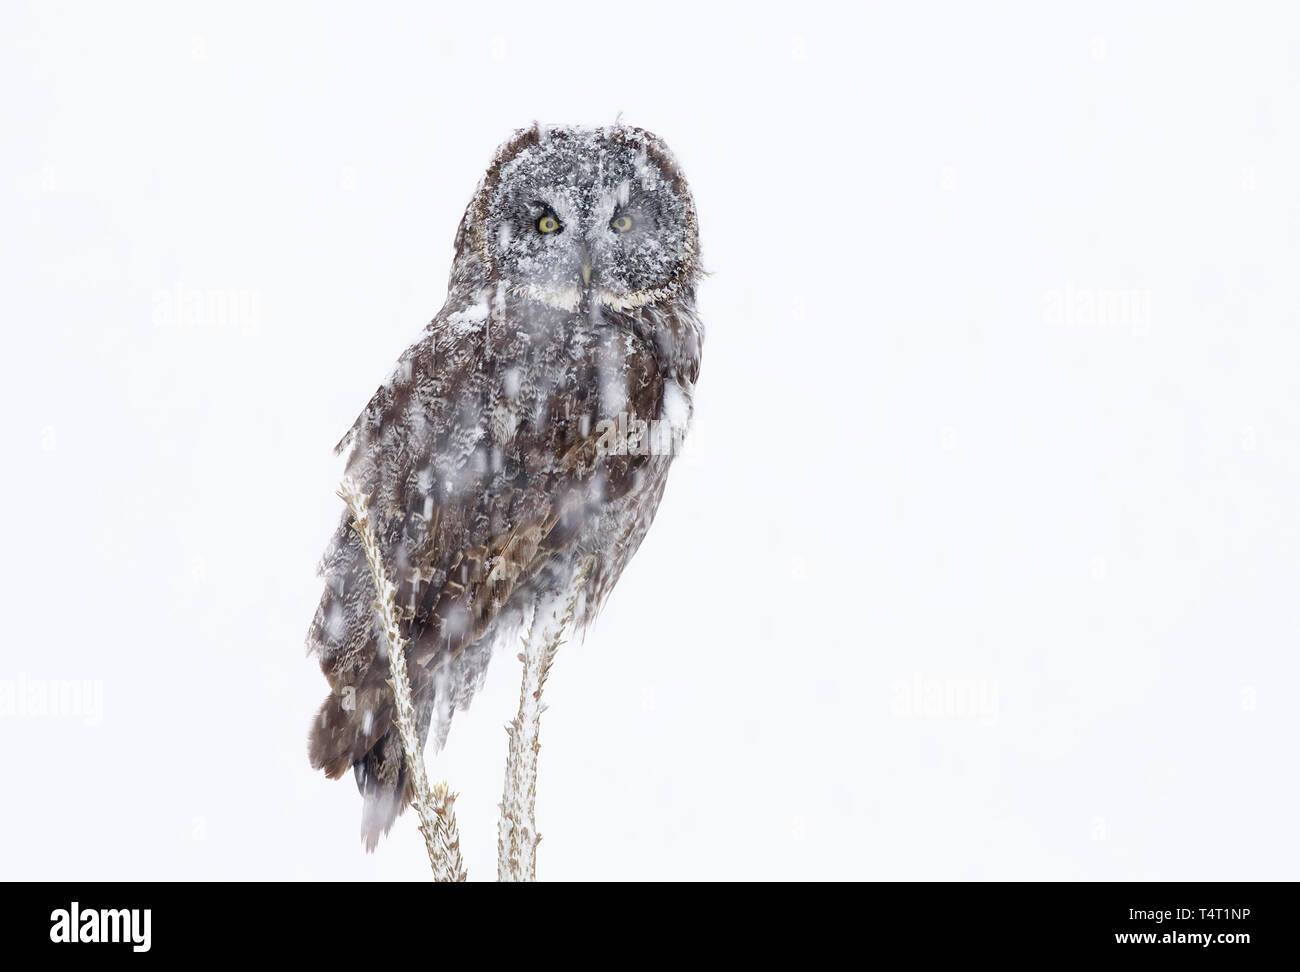 Great grey owl perched on a branch in a Canadian winter snowstorm - Stock Image